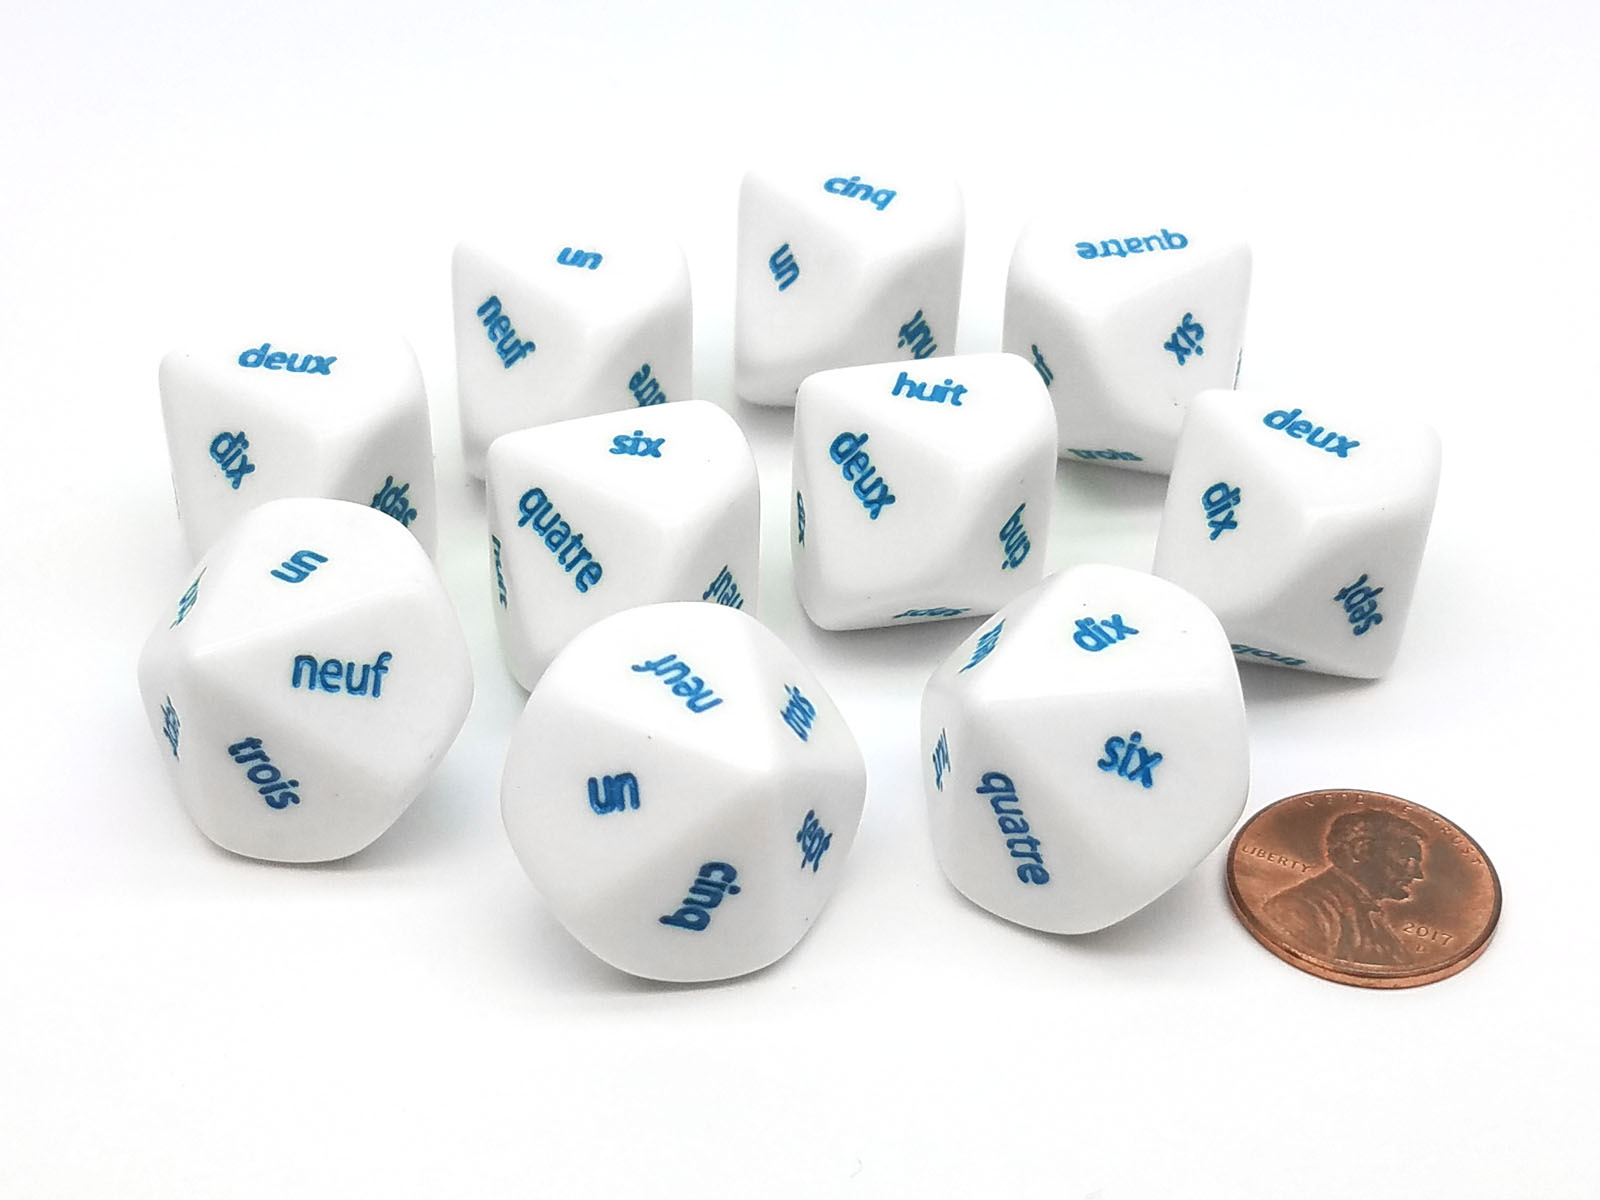 1 to 10 White with Black Etches Pack of 10 D10 Sign Language Dice